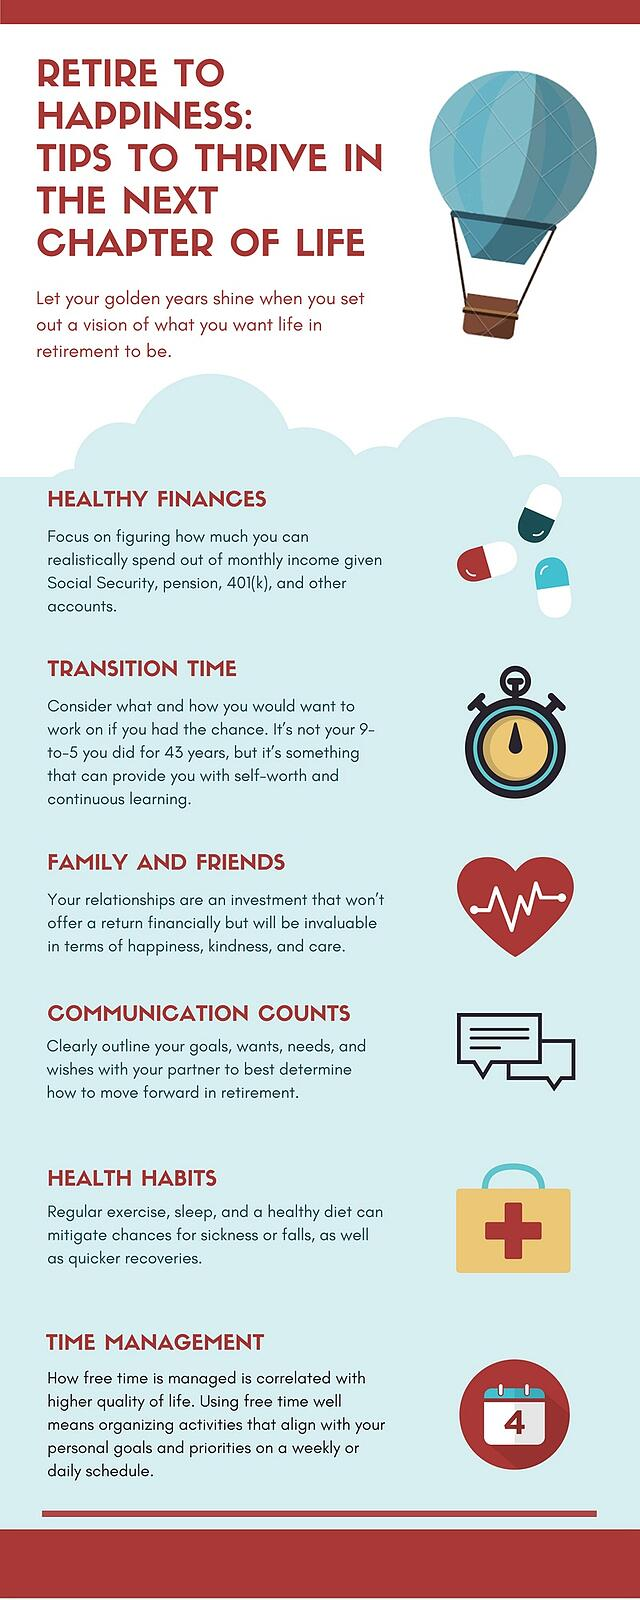 Retire to Happiness-Tips to Thrive in the Next Chapter of Life.jpg